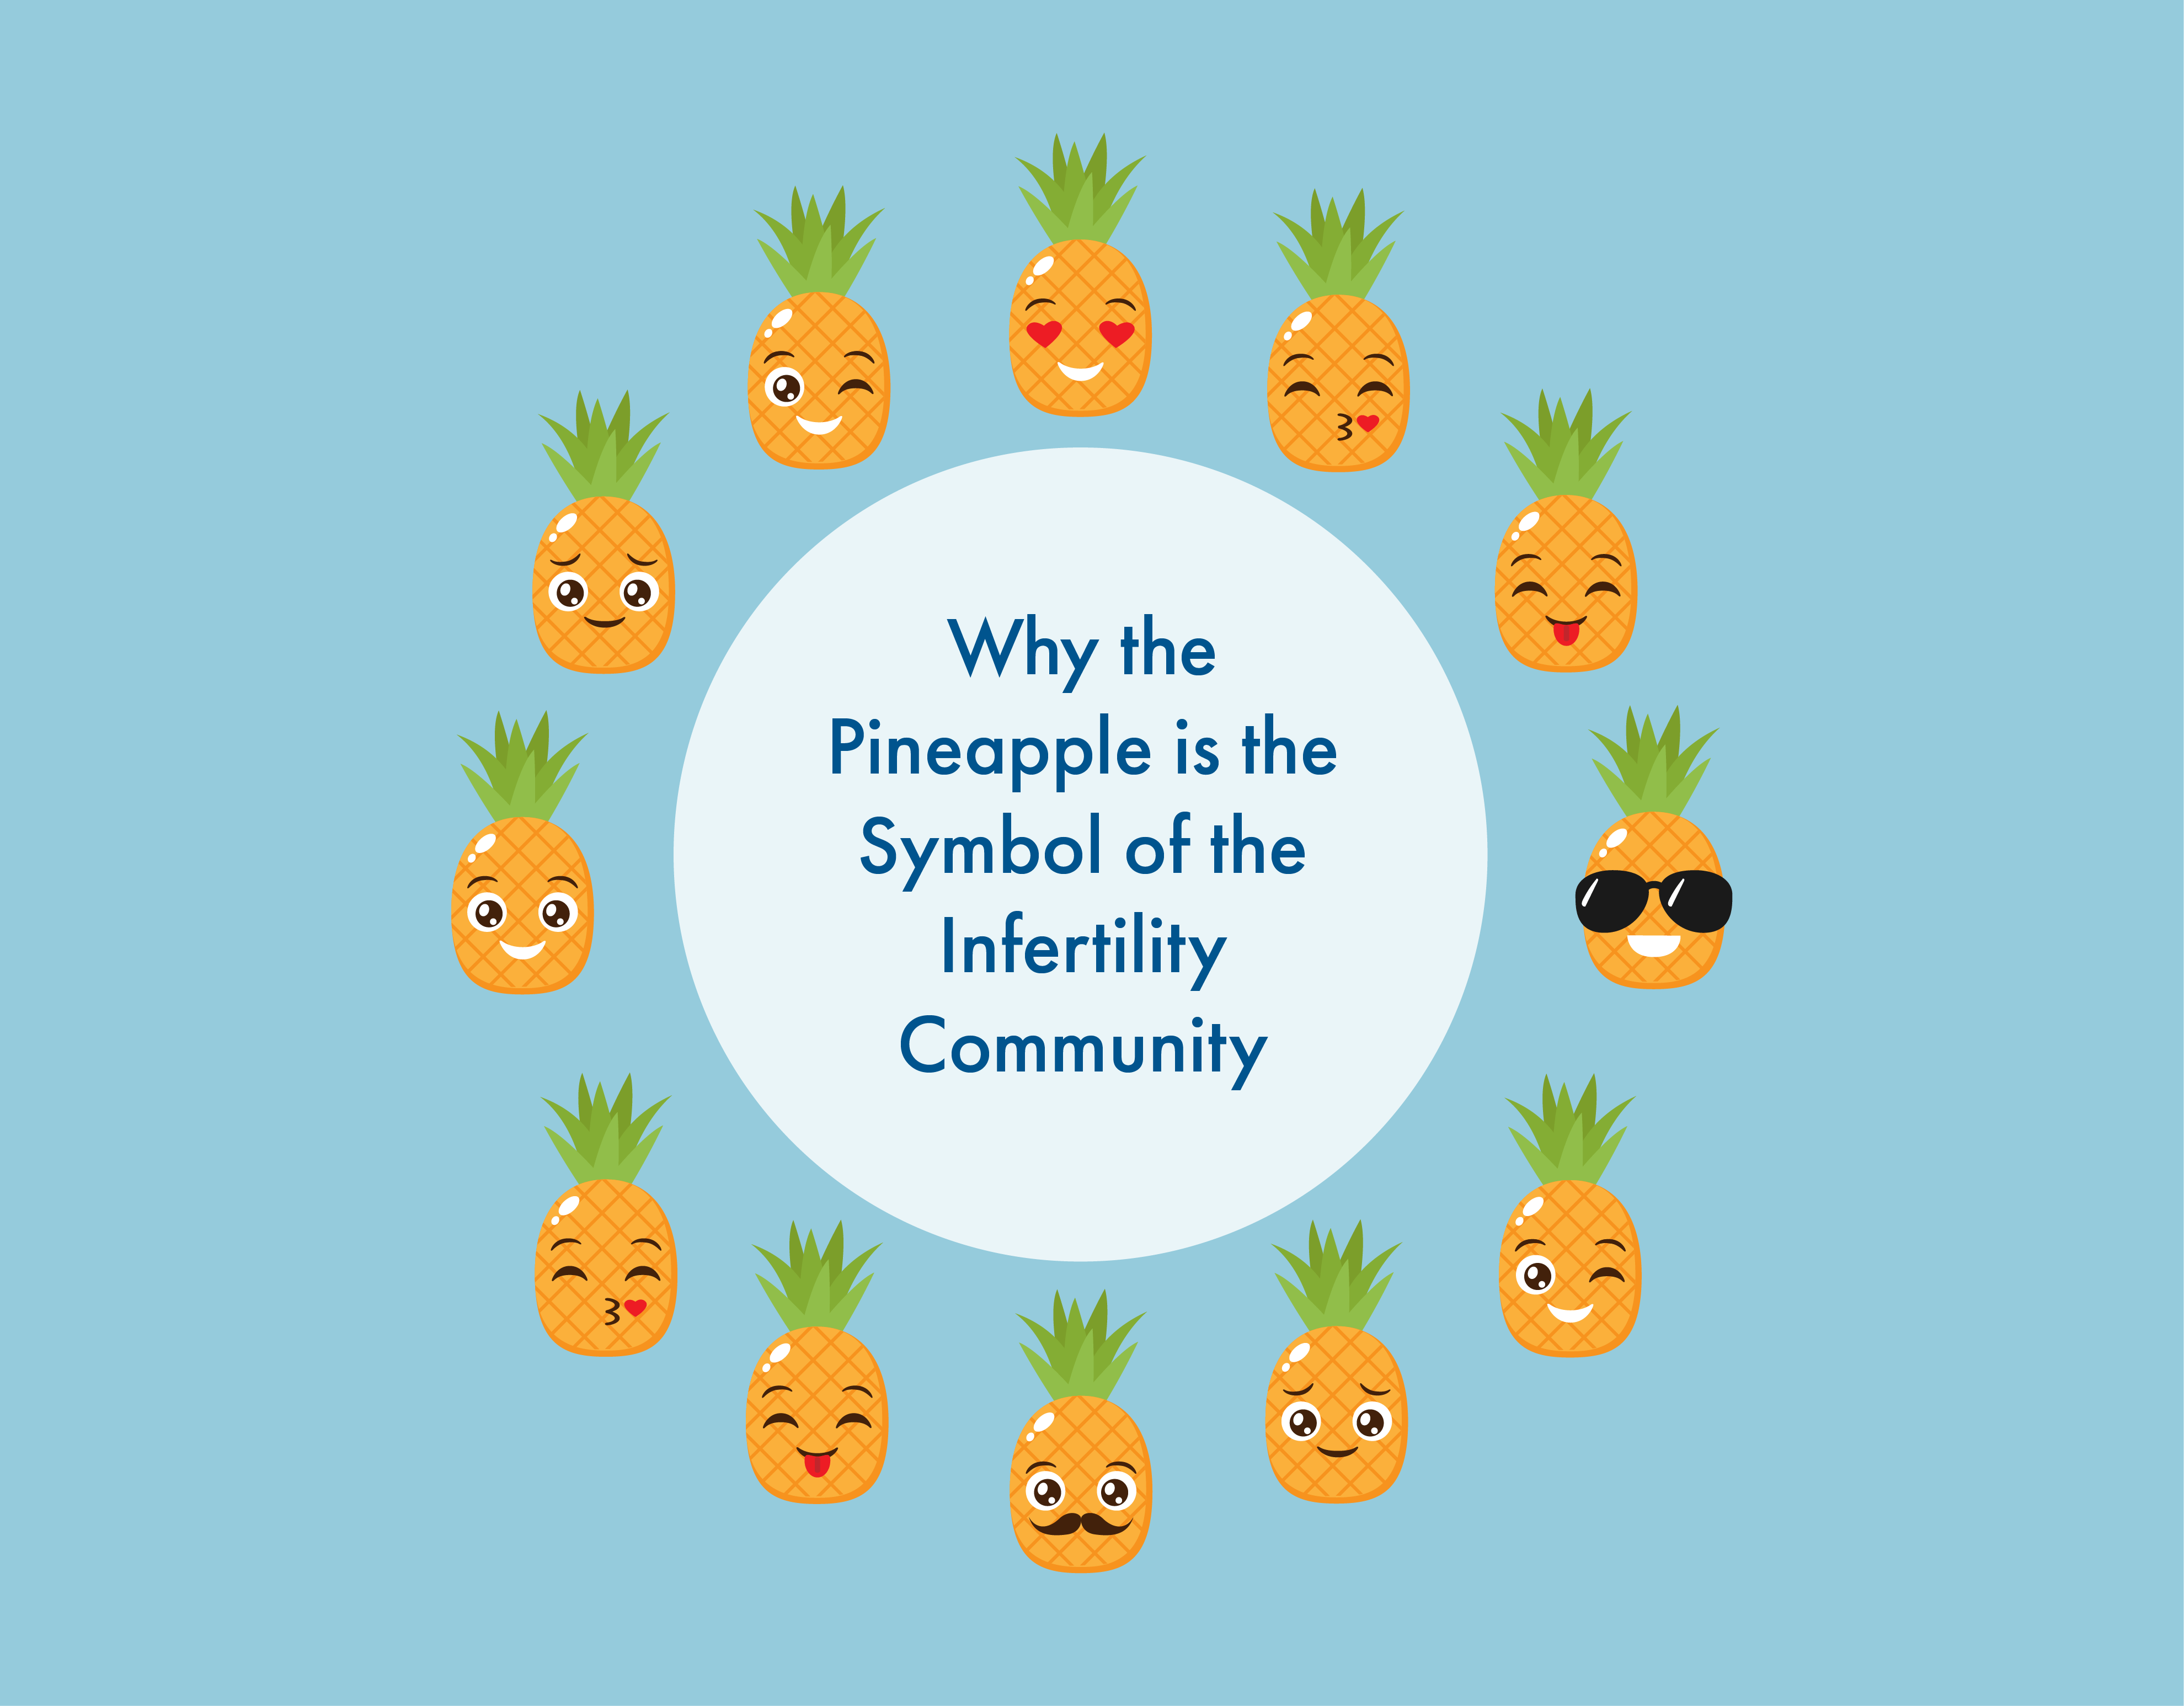 Why The Pineapple Is The Symbol Of The Infertility Community